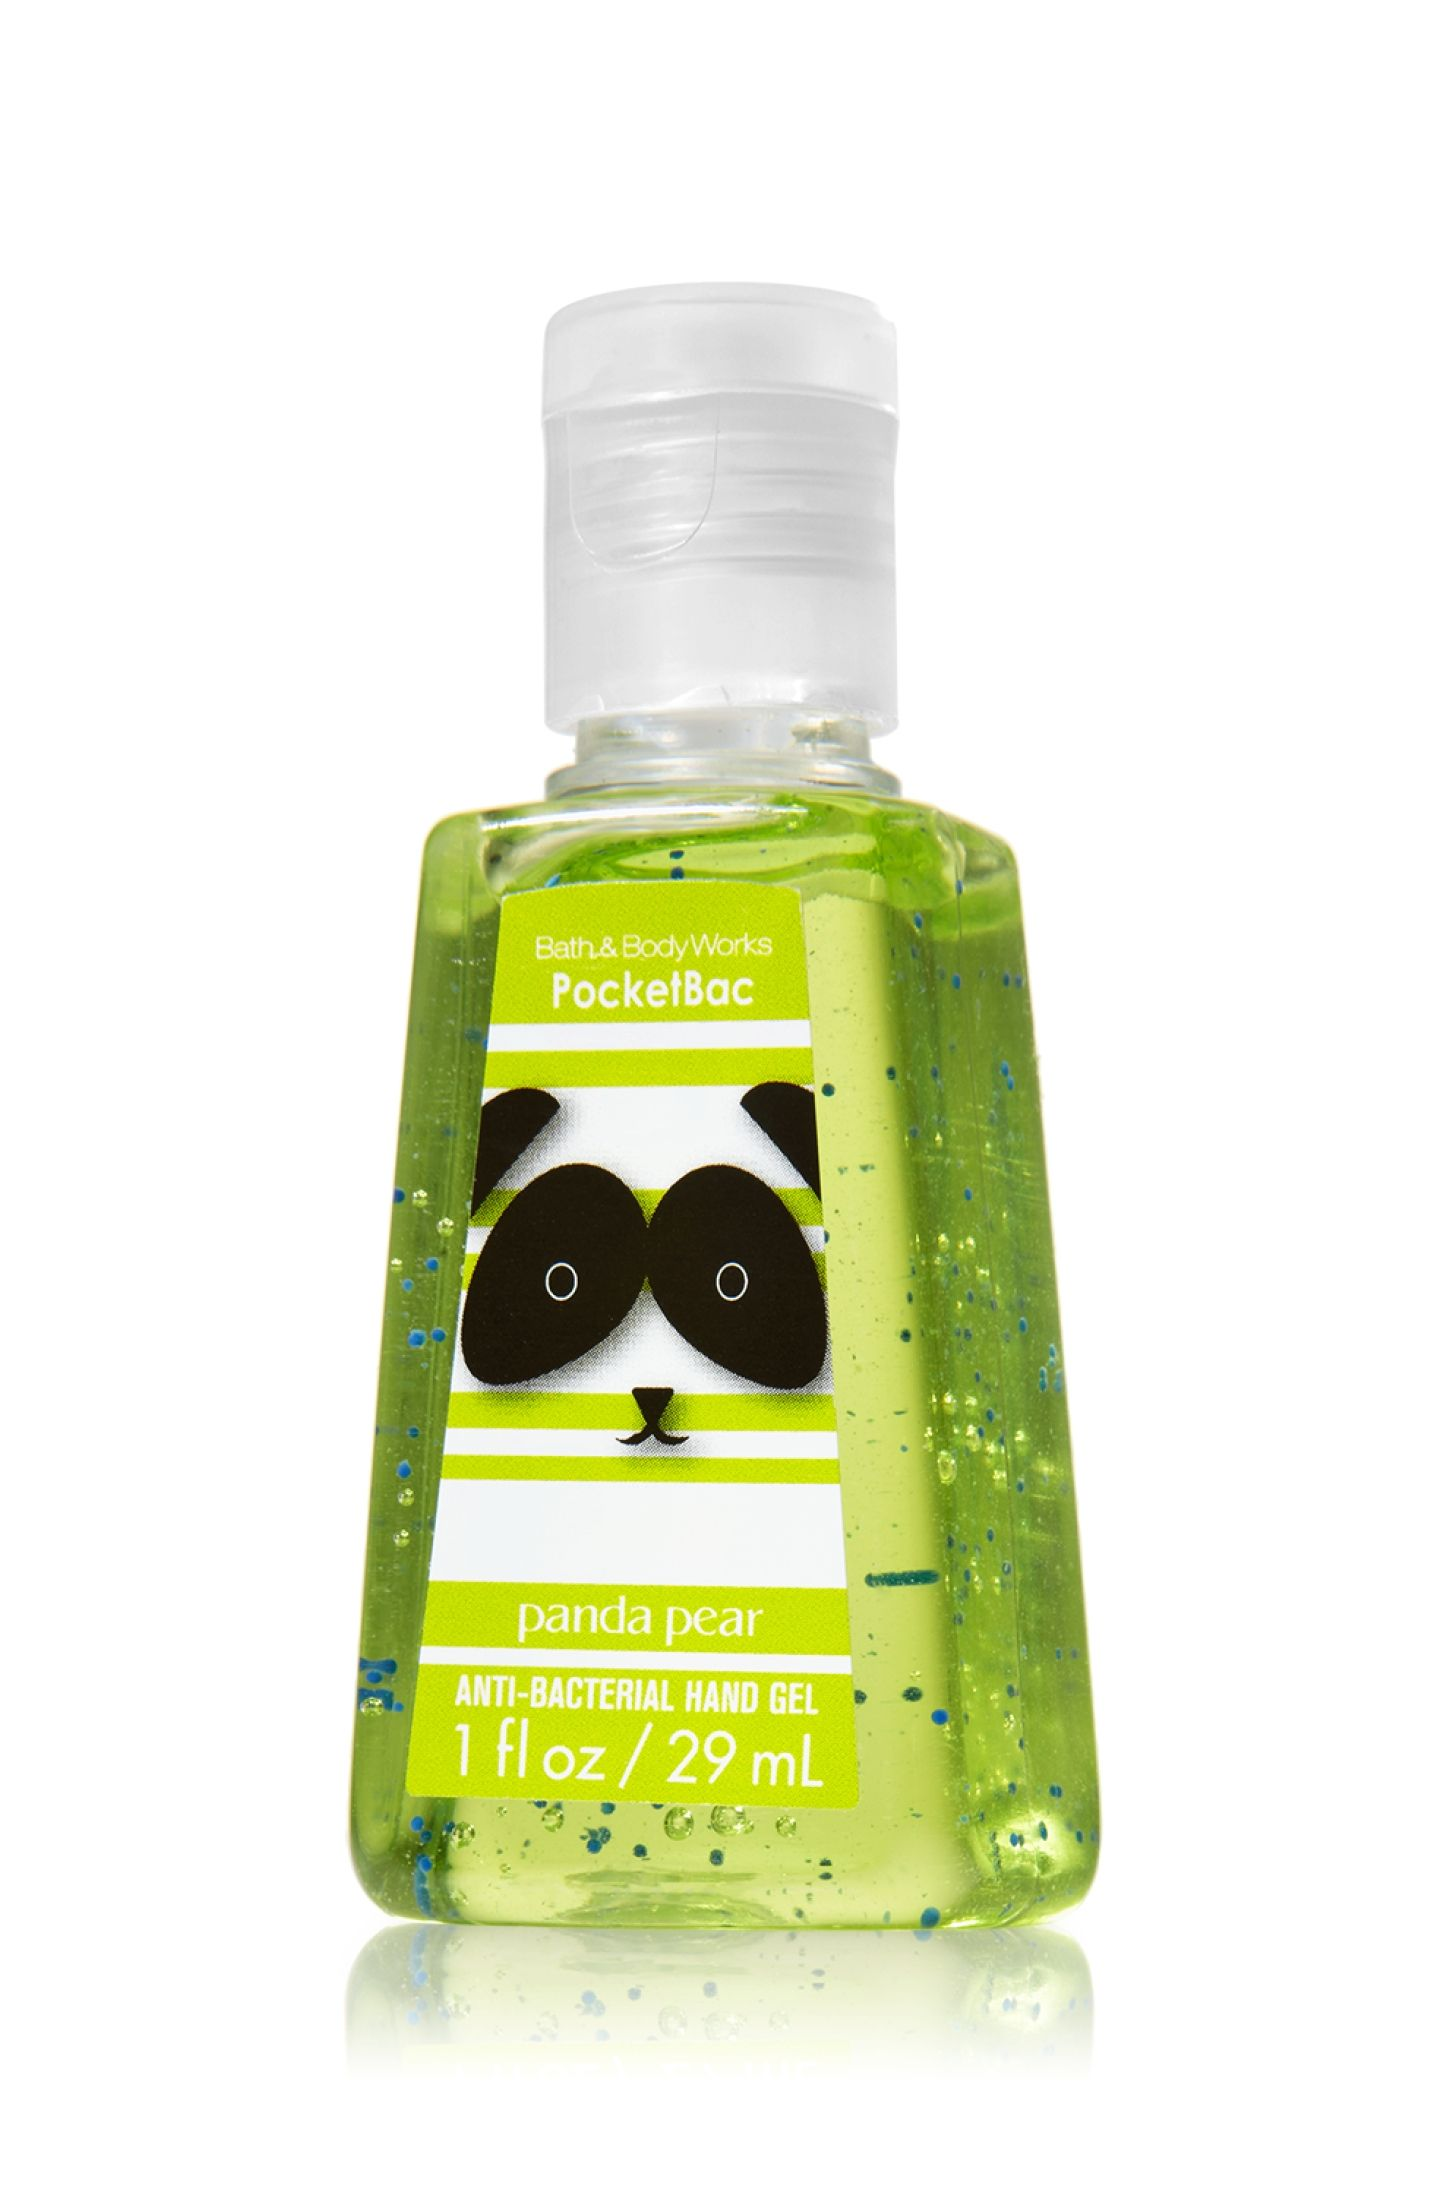 Panda Pear Anti Bacterial Hand Wash Bath Body Works Bath And